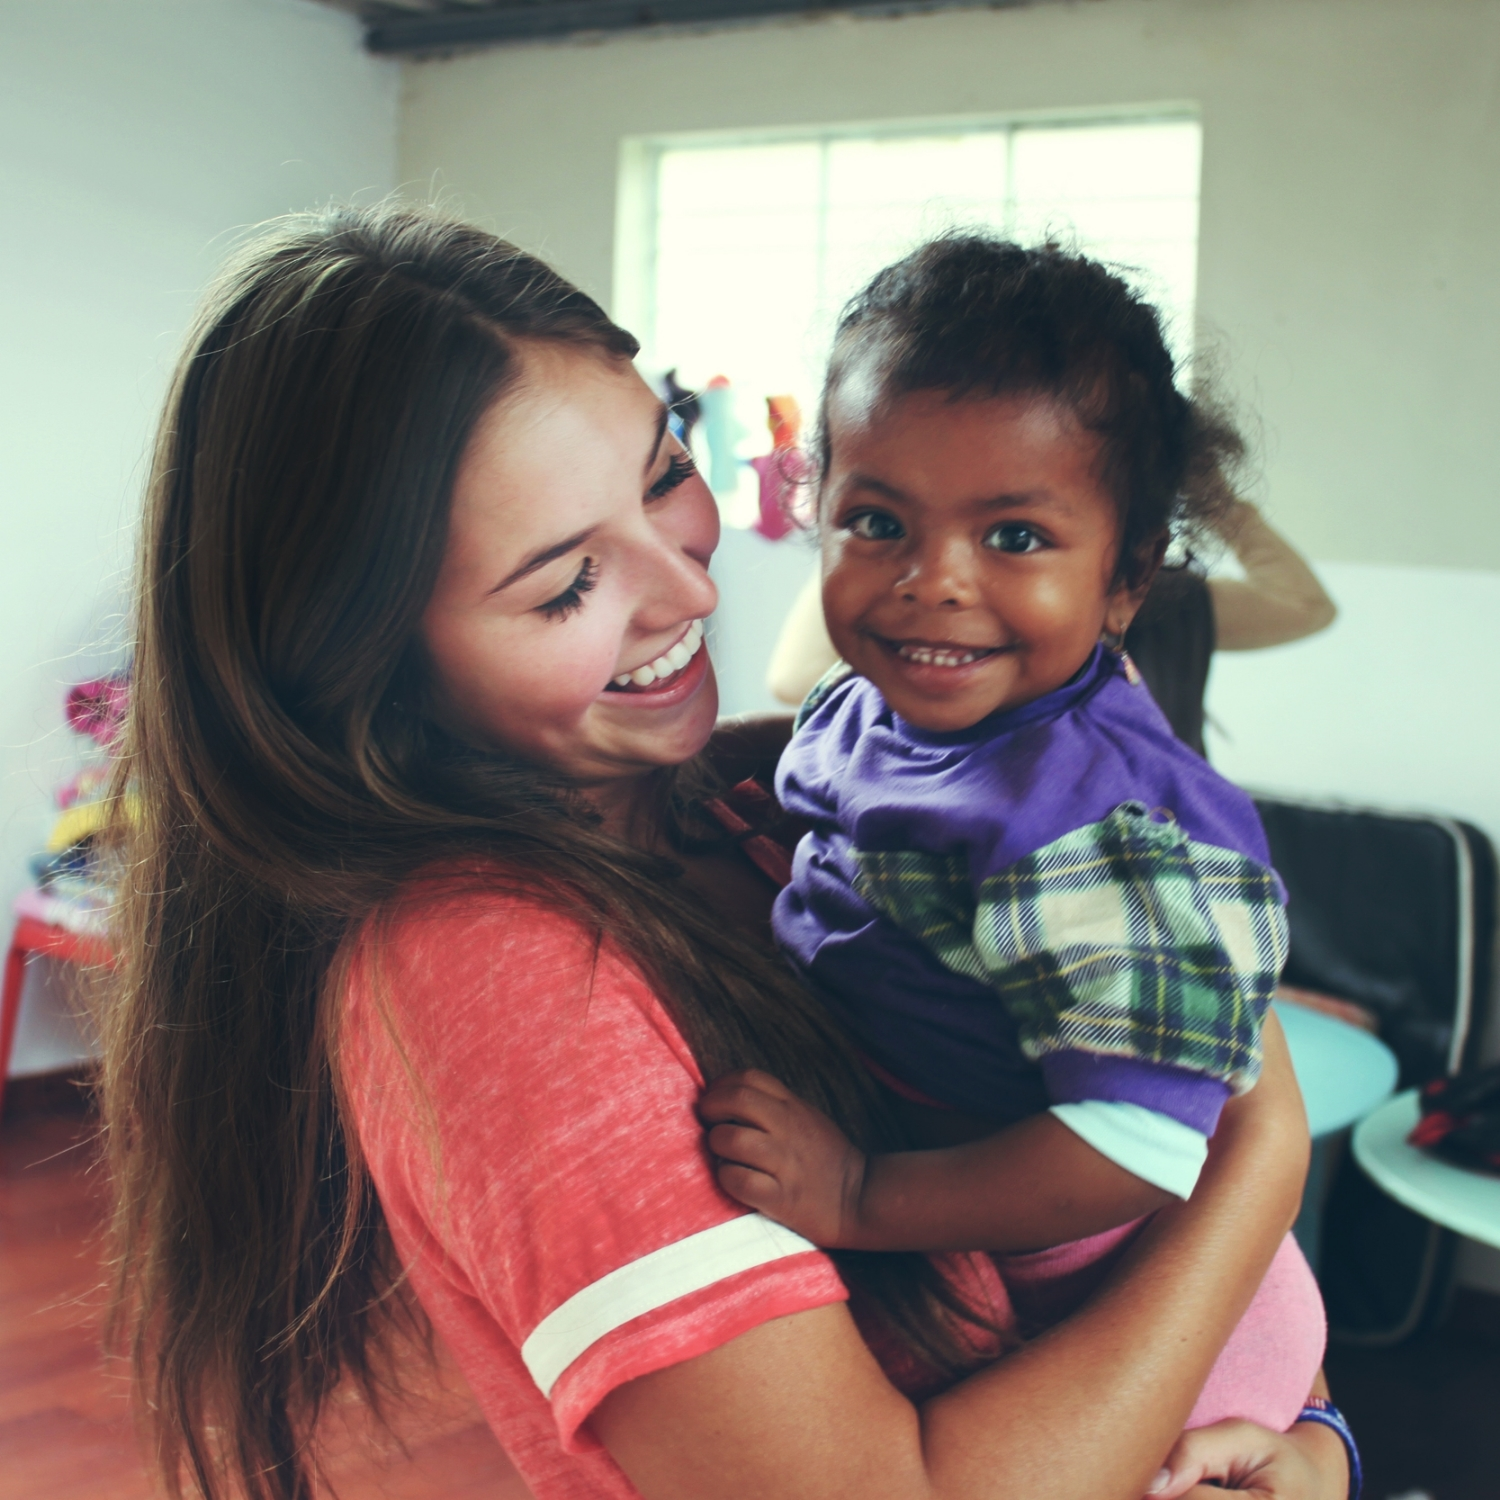 Volunteer with child, smiling